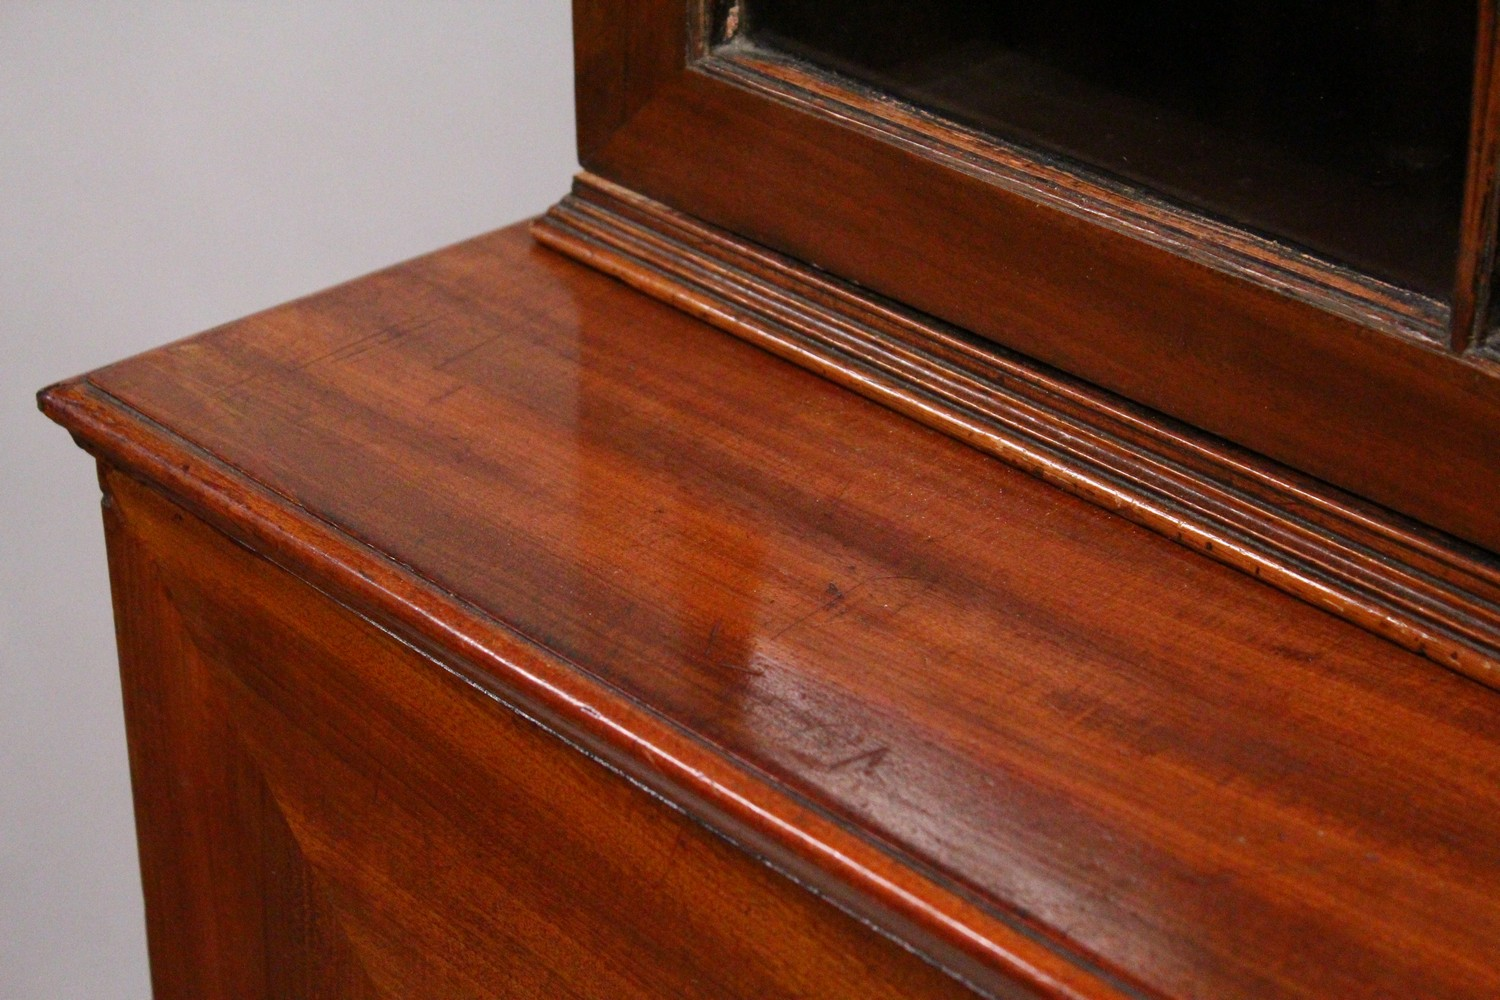 Lot 1027 - A GEORGE III DESIGN MAHOGANY CUPBOARD BOOKCASE, 19TH CENTURY, with a moulded cornice, pair of